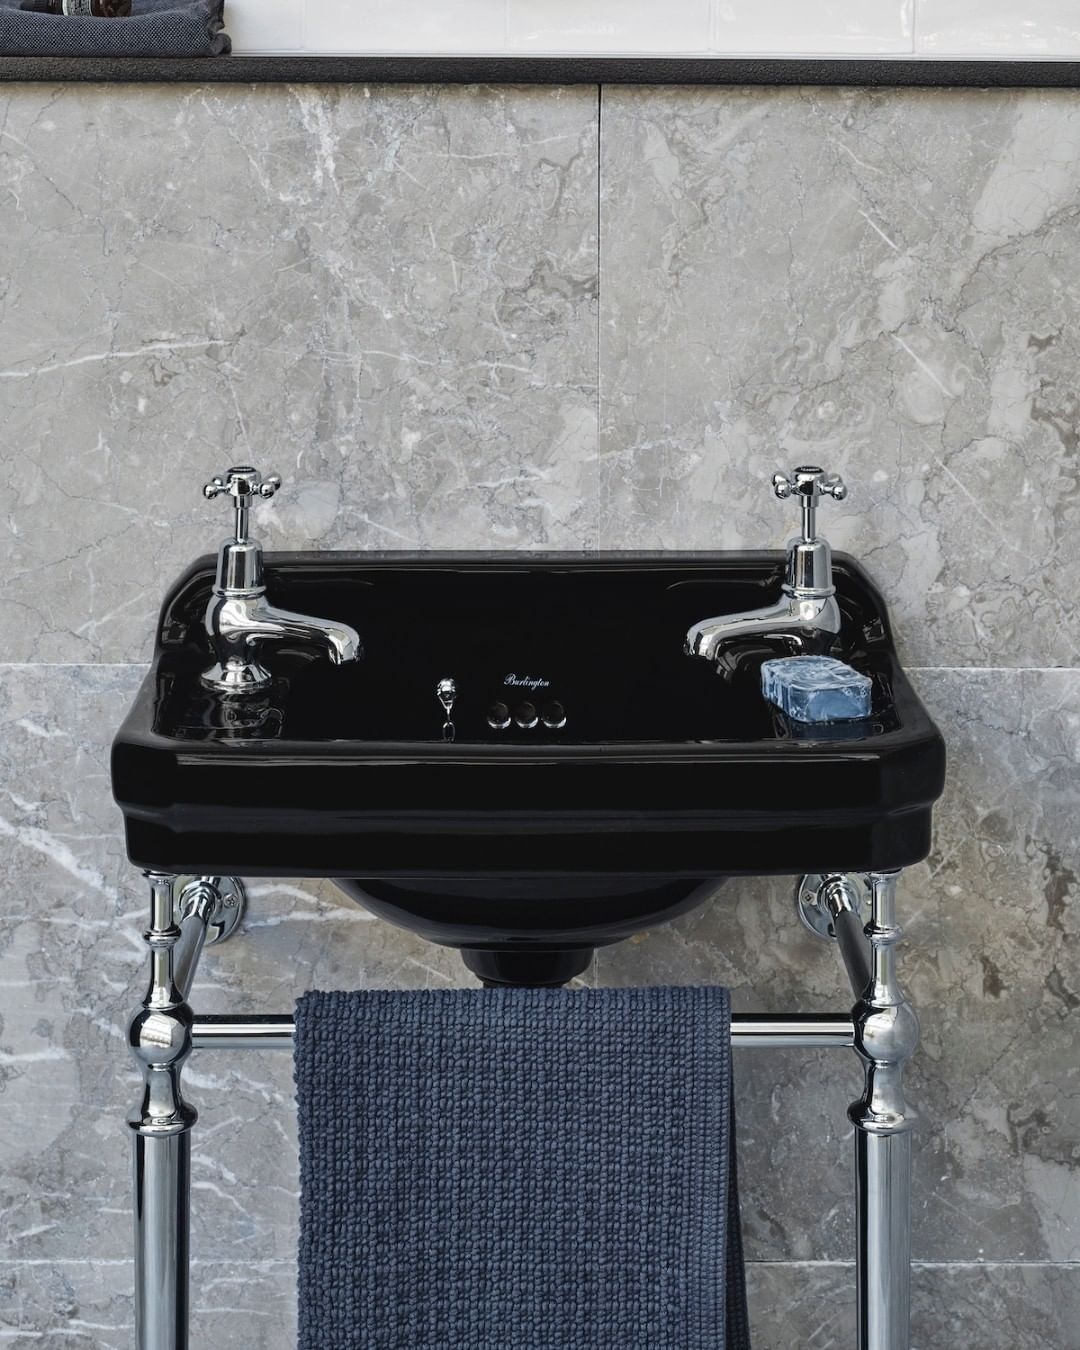 Burlington Bathrooms On Instagram Embrace Your Dark Side With Our Edwardian Cloakroom Basin In In 2020 Cloakroom Basin Nautical Bathroom Decor Bathroom Paint Colors